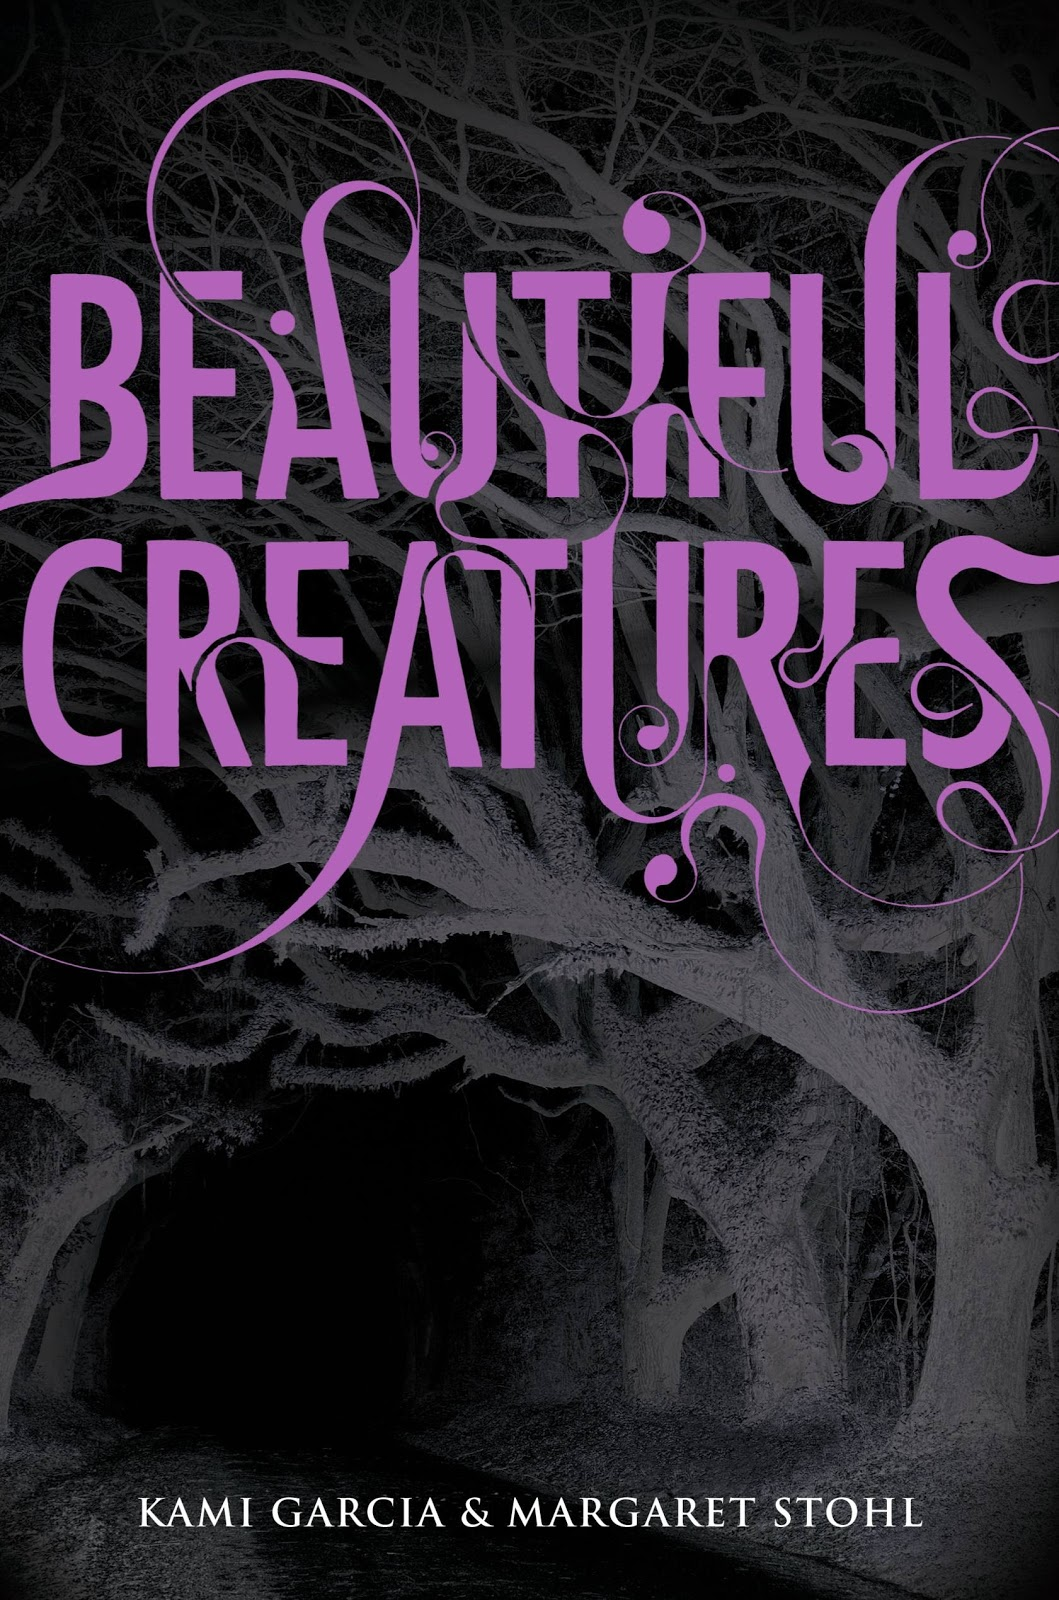 Book Cover Forros Reviews : Down the rabbit hole book review beautiful creatures by